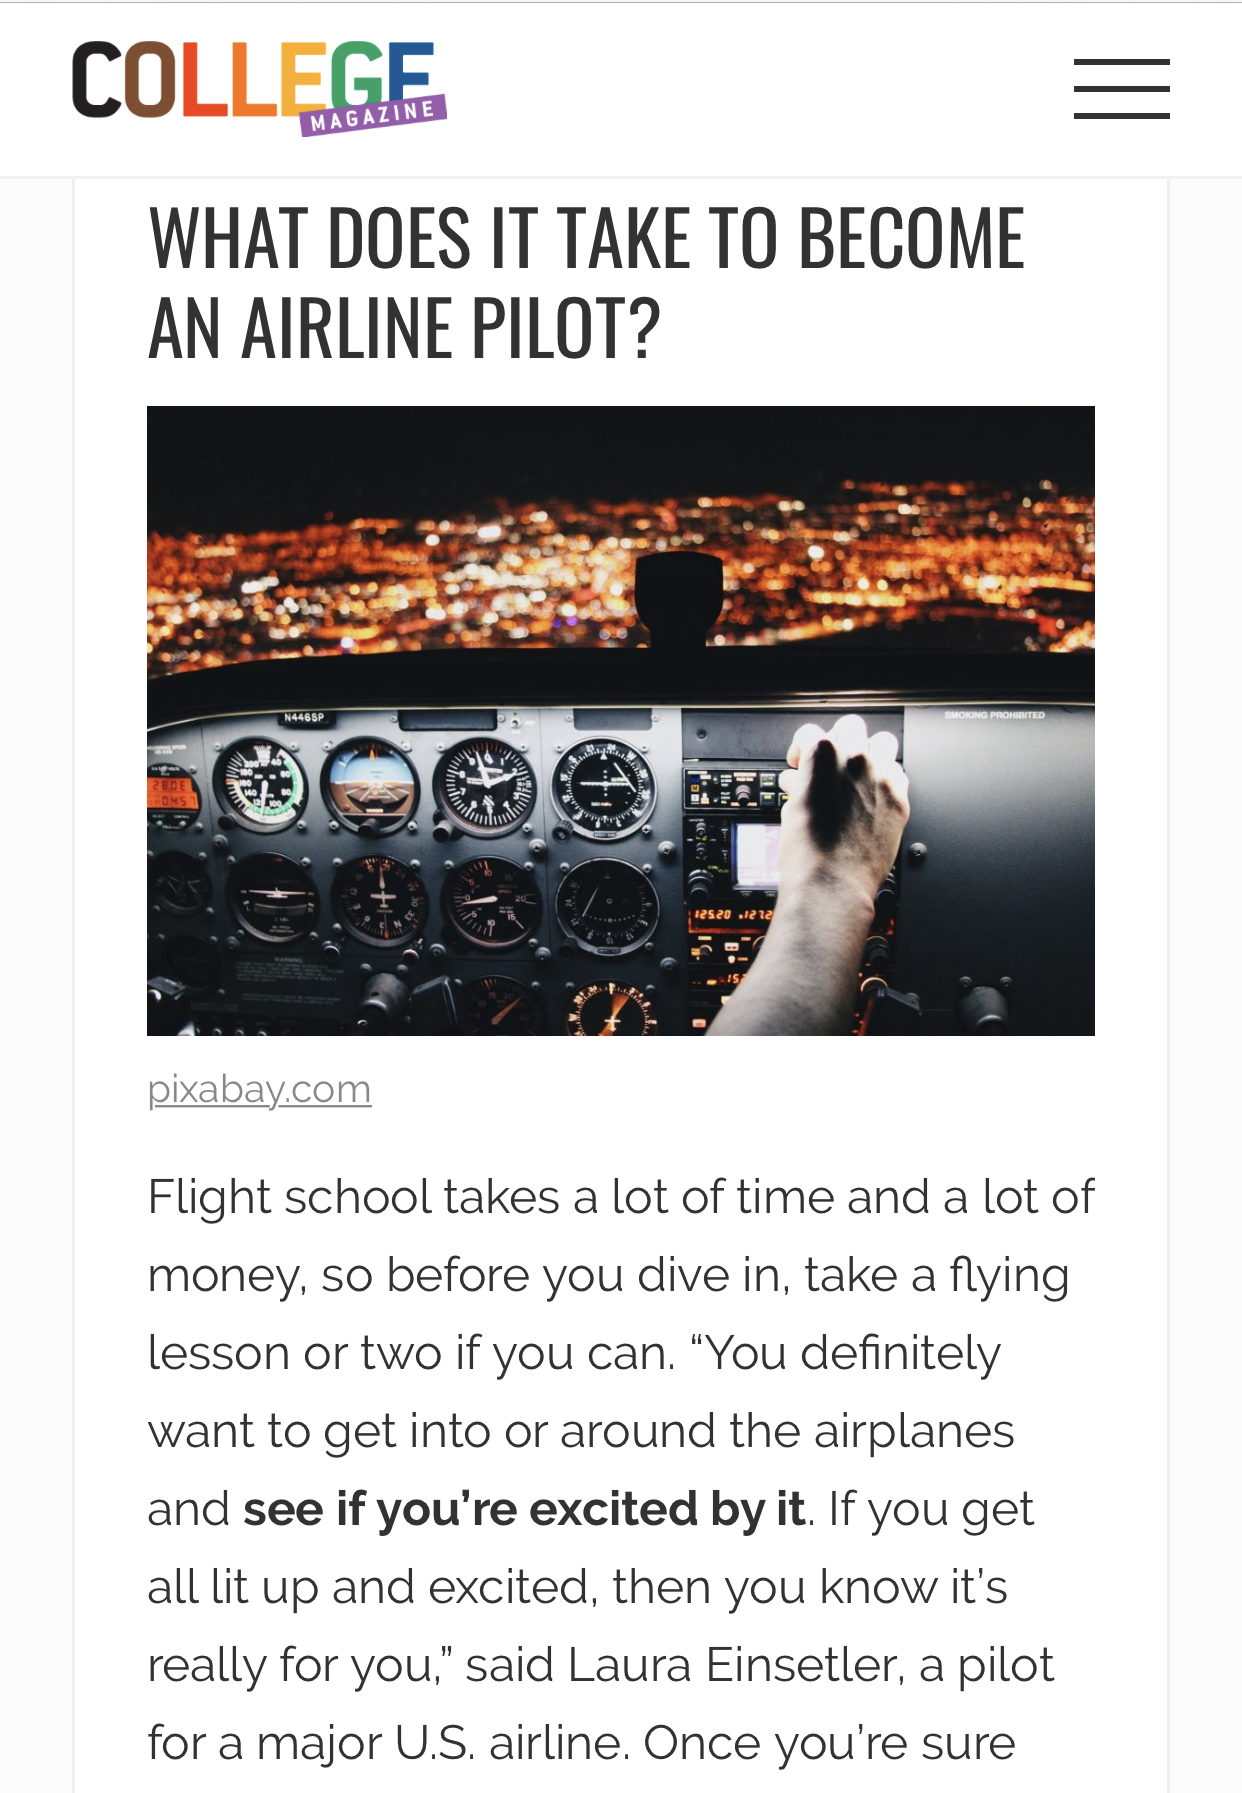 """How to Become a Pilot"" – College Magazine"